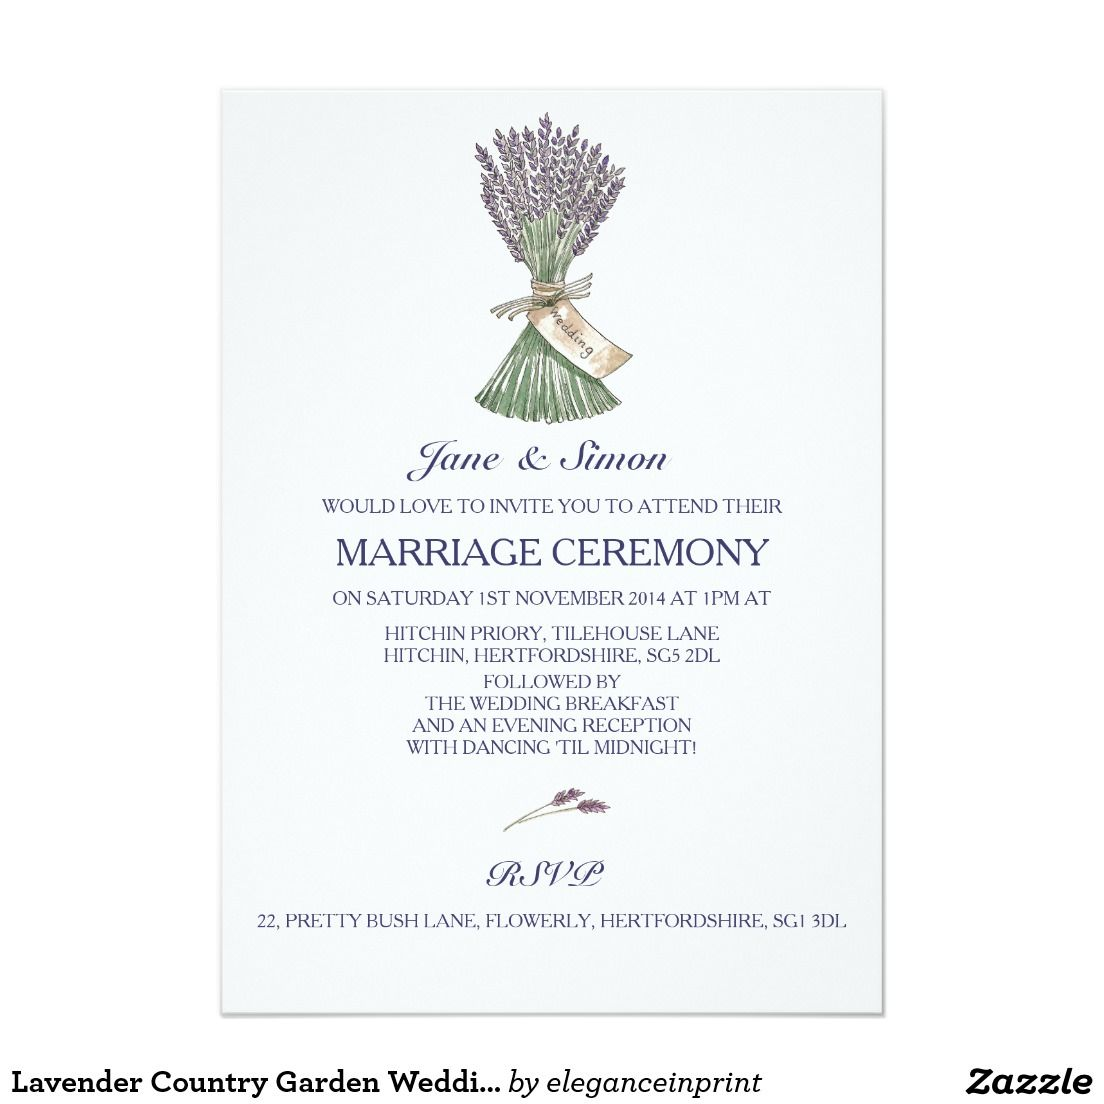 Lavender Country Garden Wedding Invitation | Gardens, Garden ...